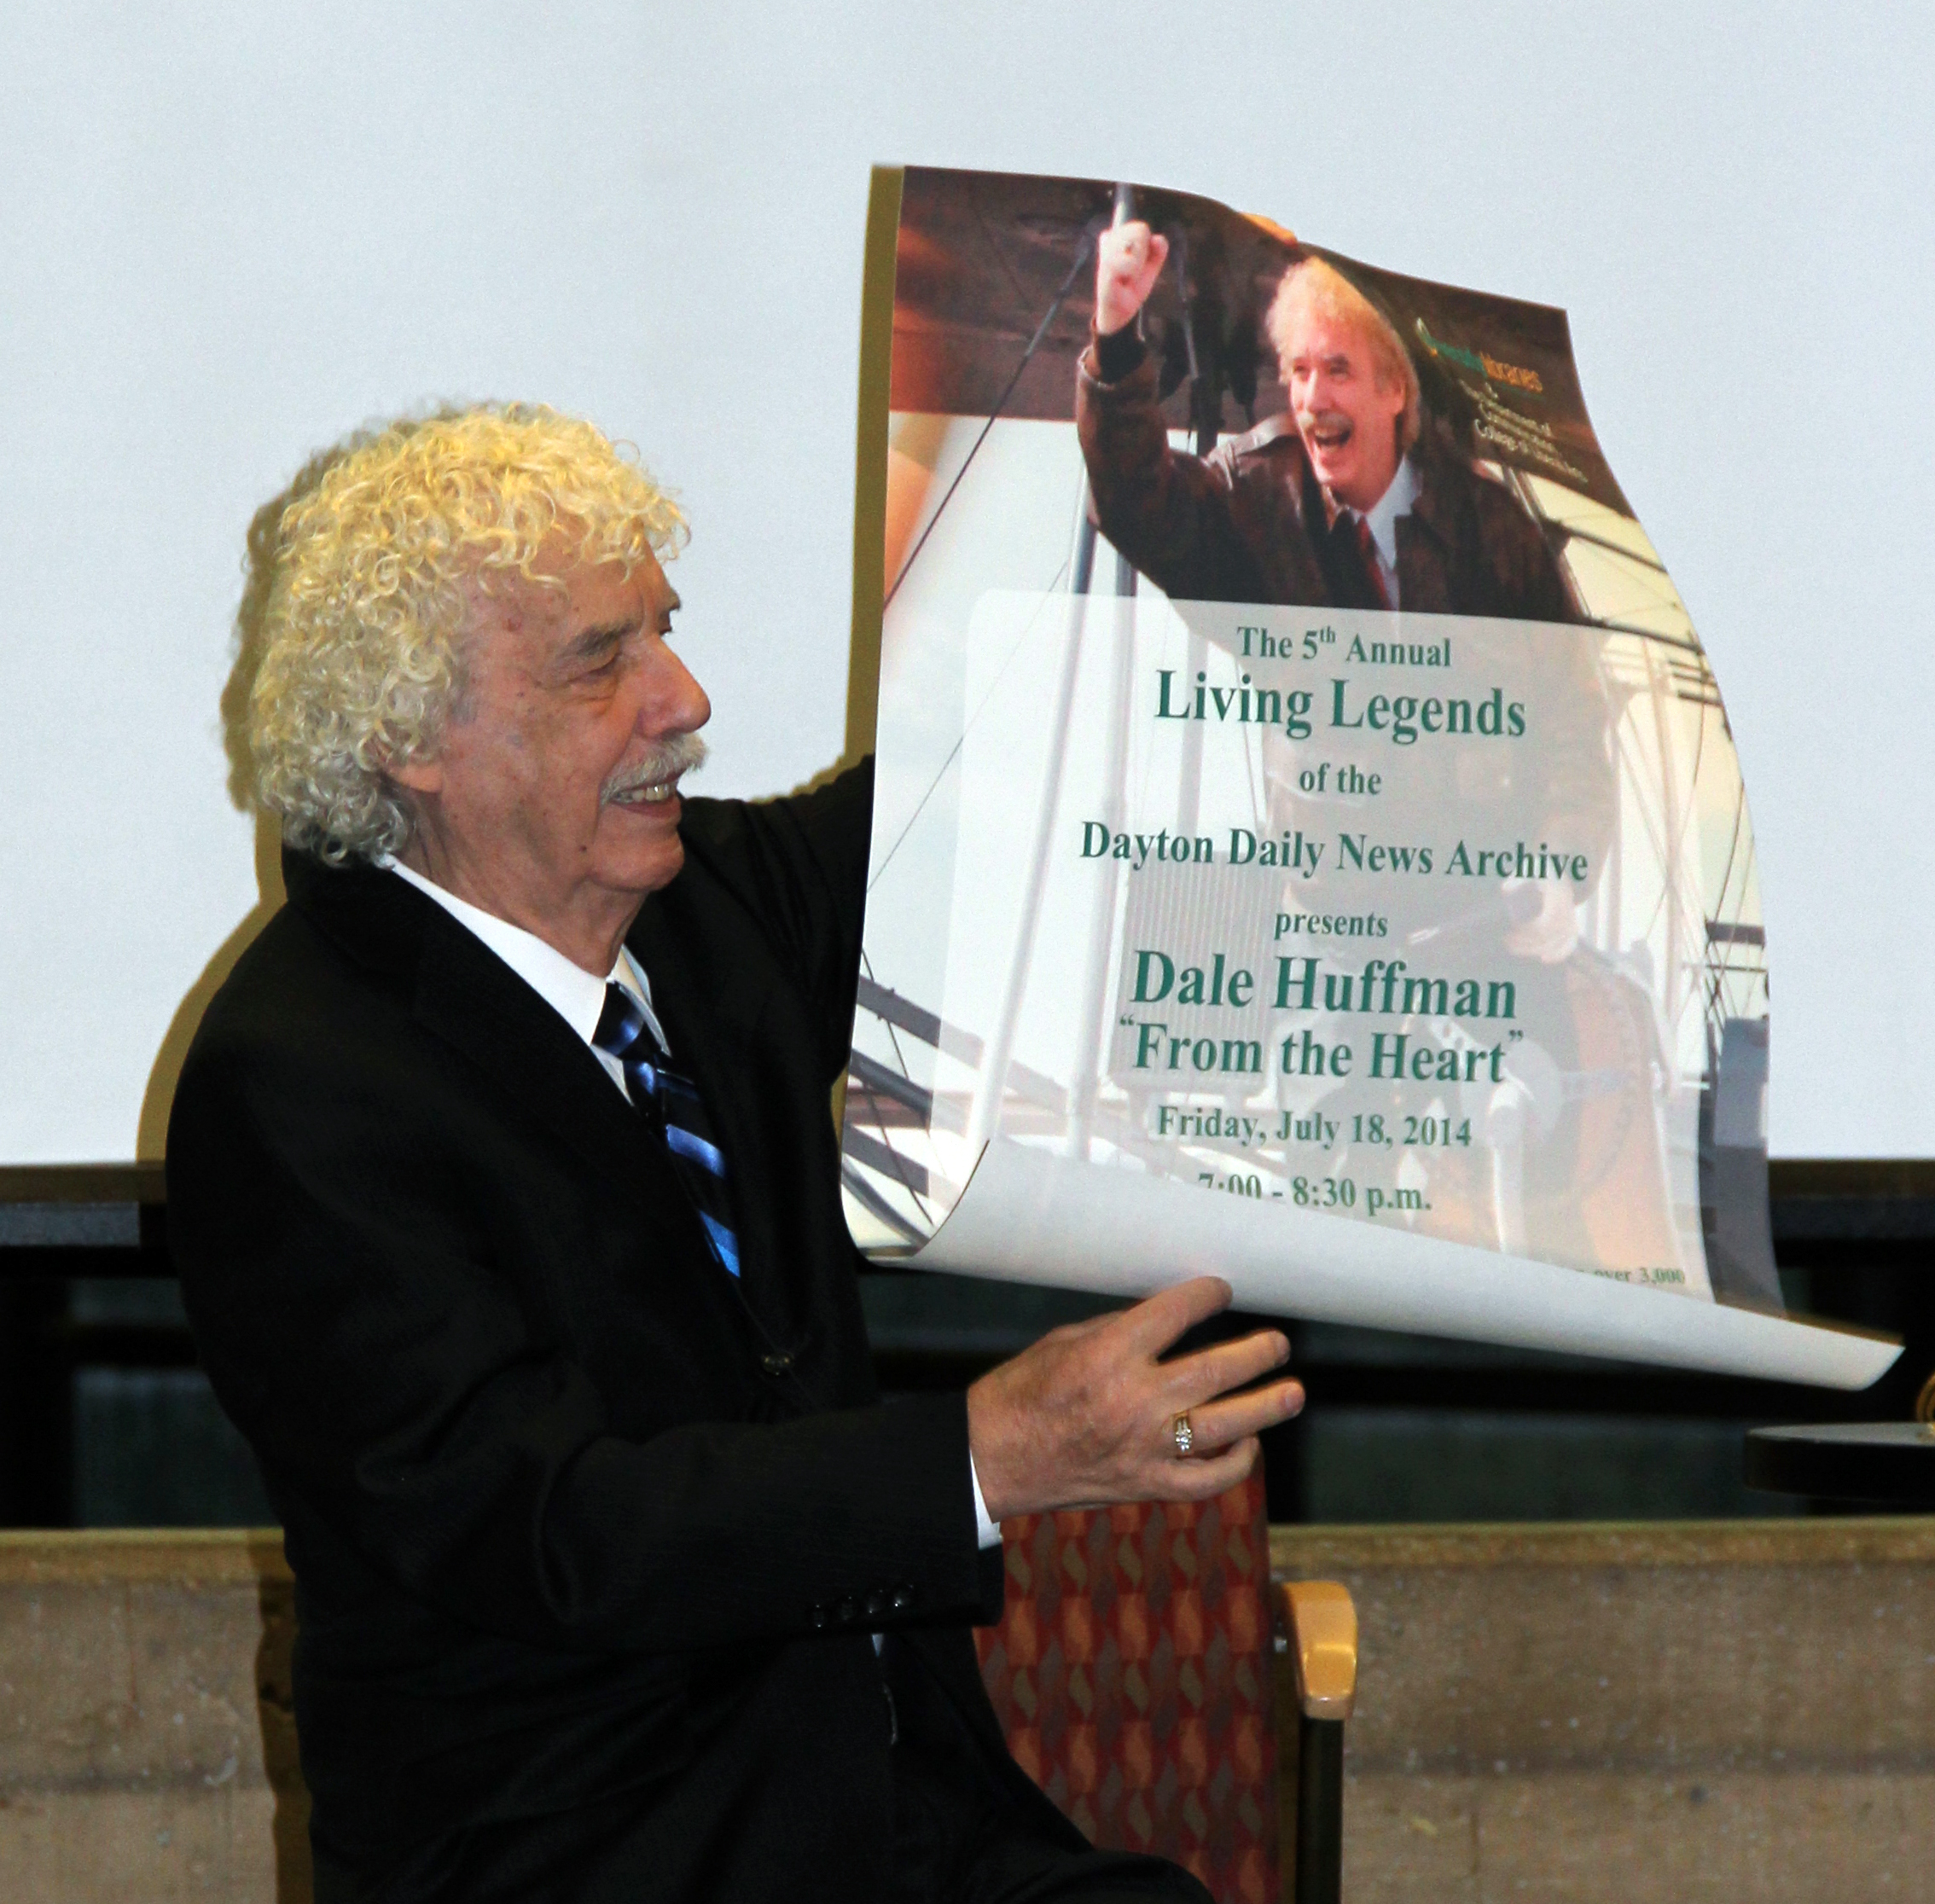 Dale Huffman was honored at our 5th annual Living Legends of the Dayton Daily News Archives event in July 2014.